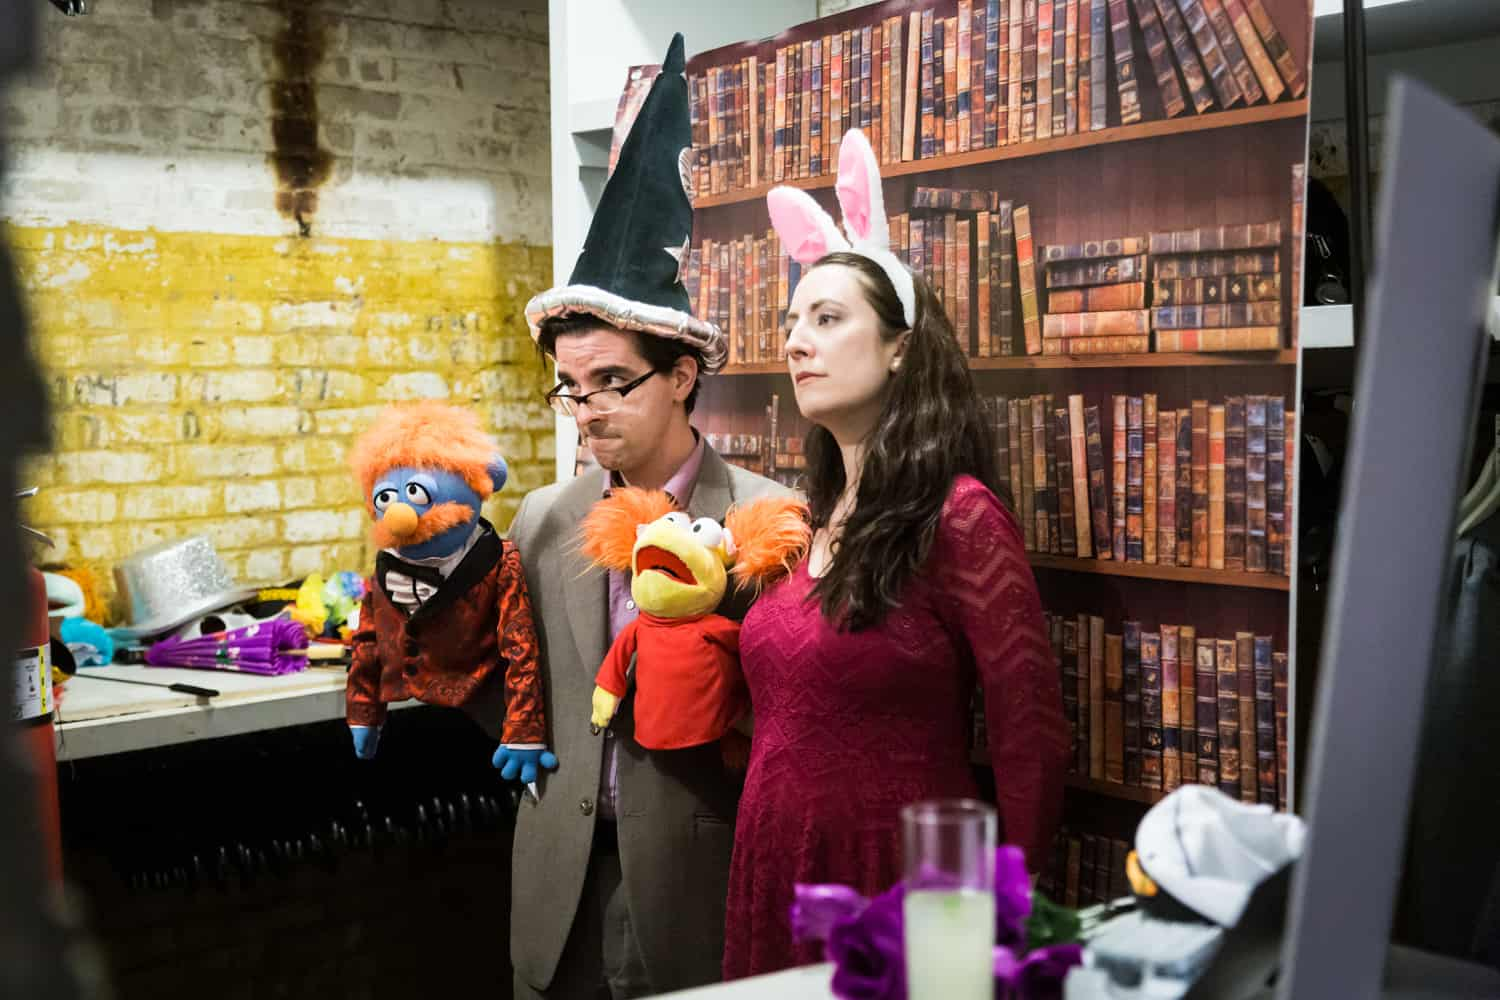 Couple dressed in bunny ears and wizard hat and holding puppets at a DIY photo booth